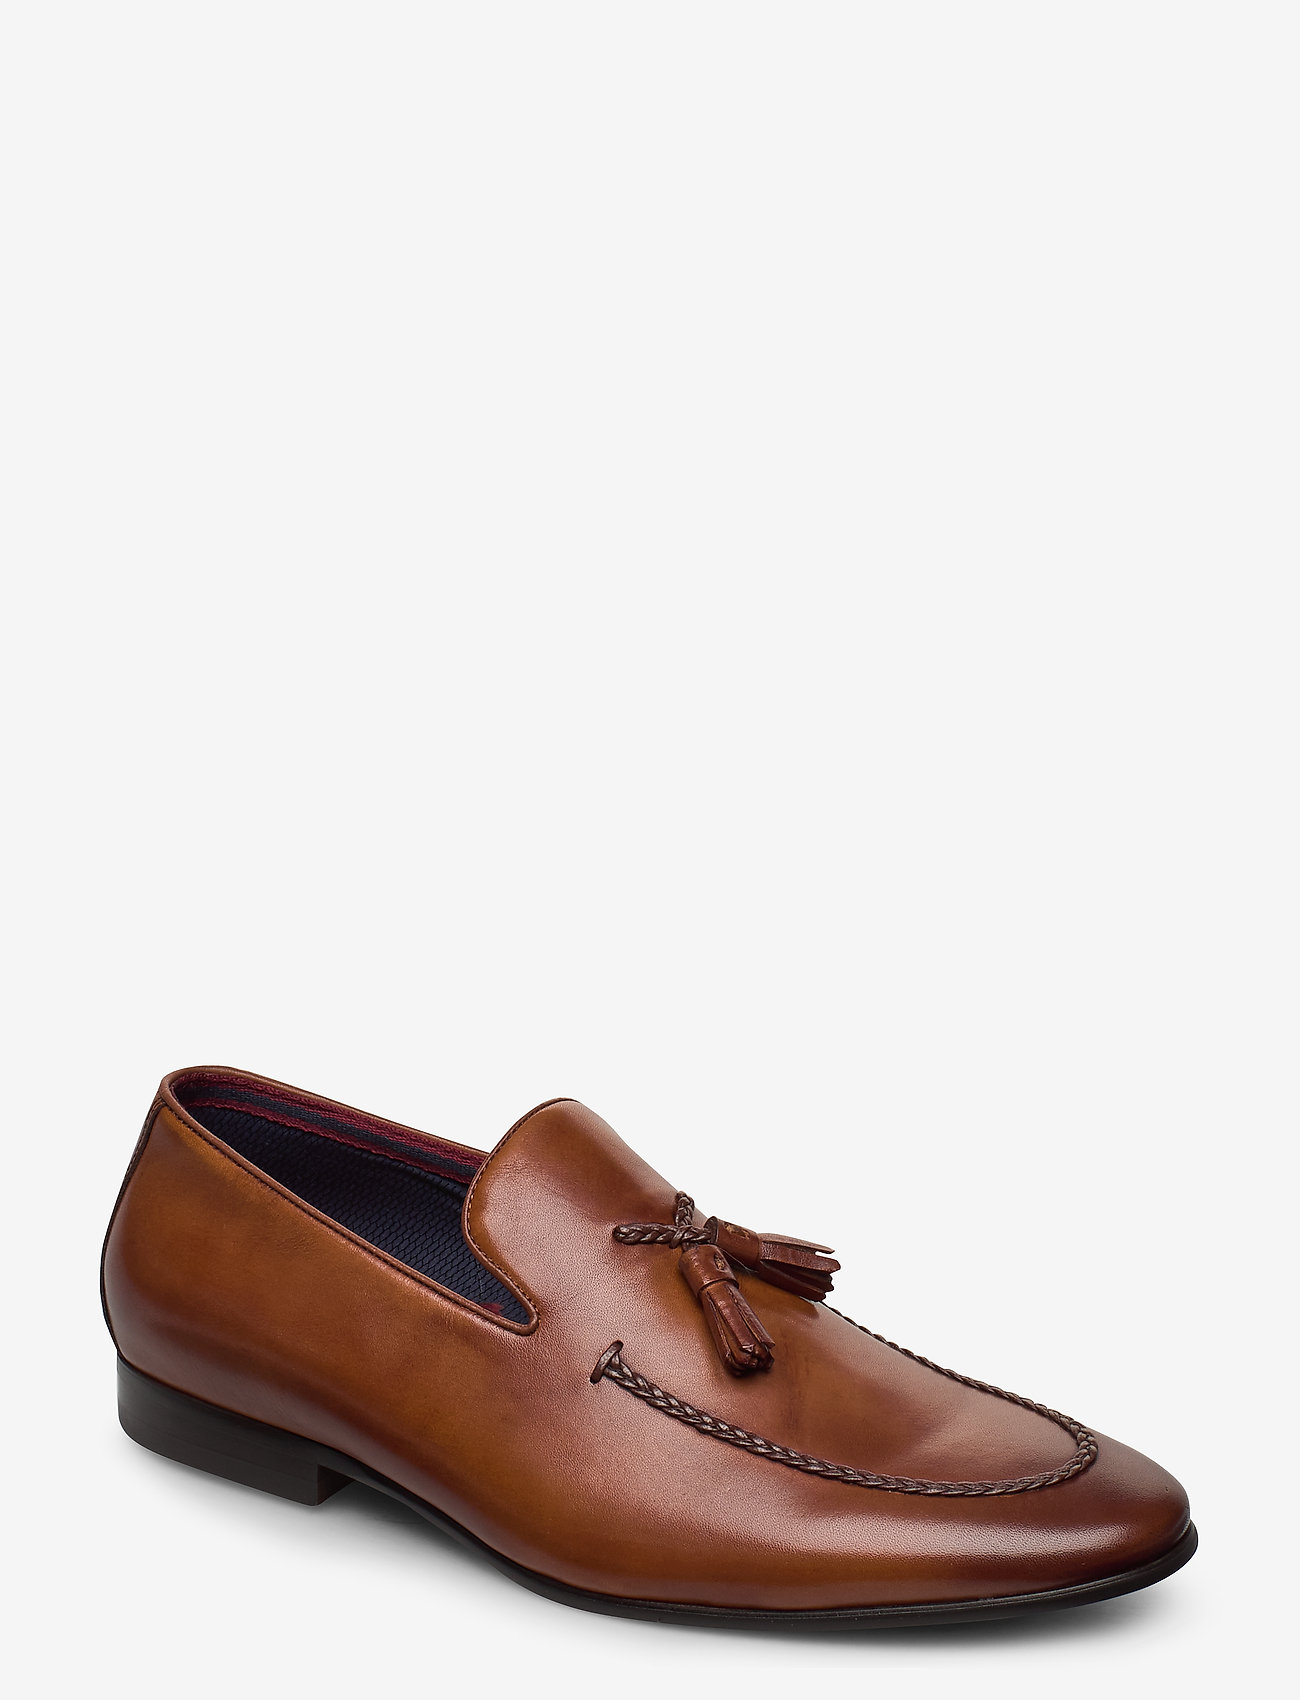 Dune London - Spirited - loafers - tan - leather - 0